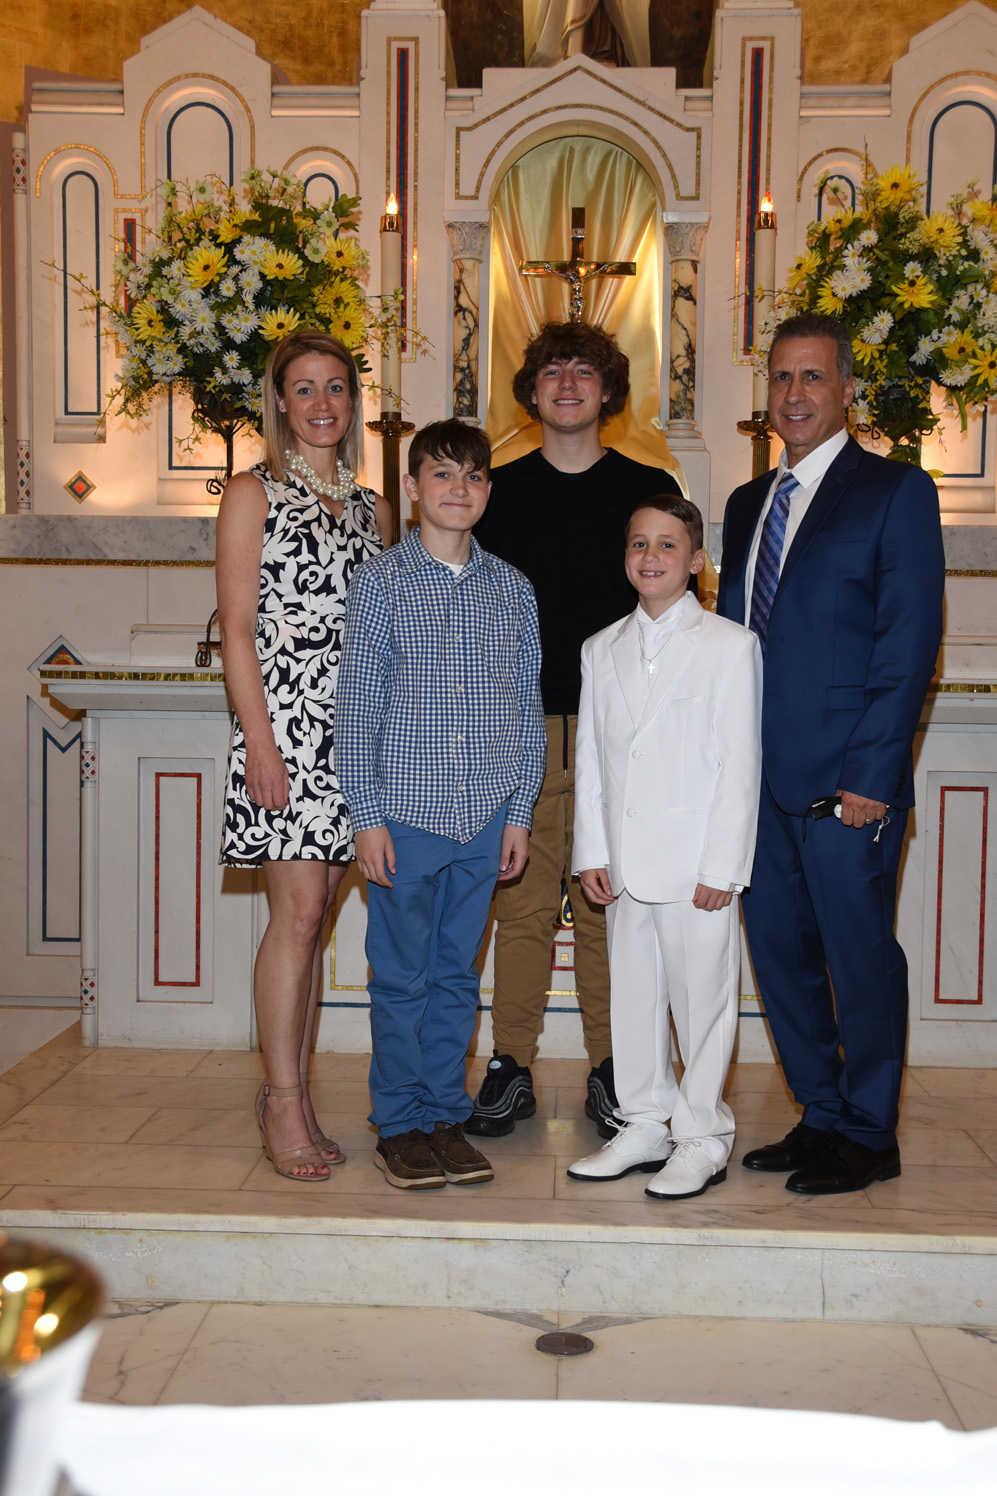 FIRST-COMMUNION-MAY-2-2021-1001001128